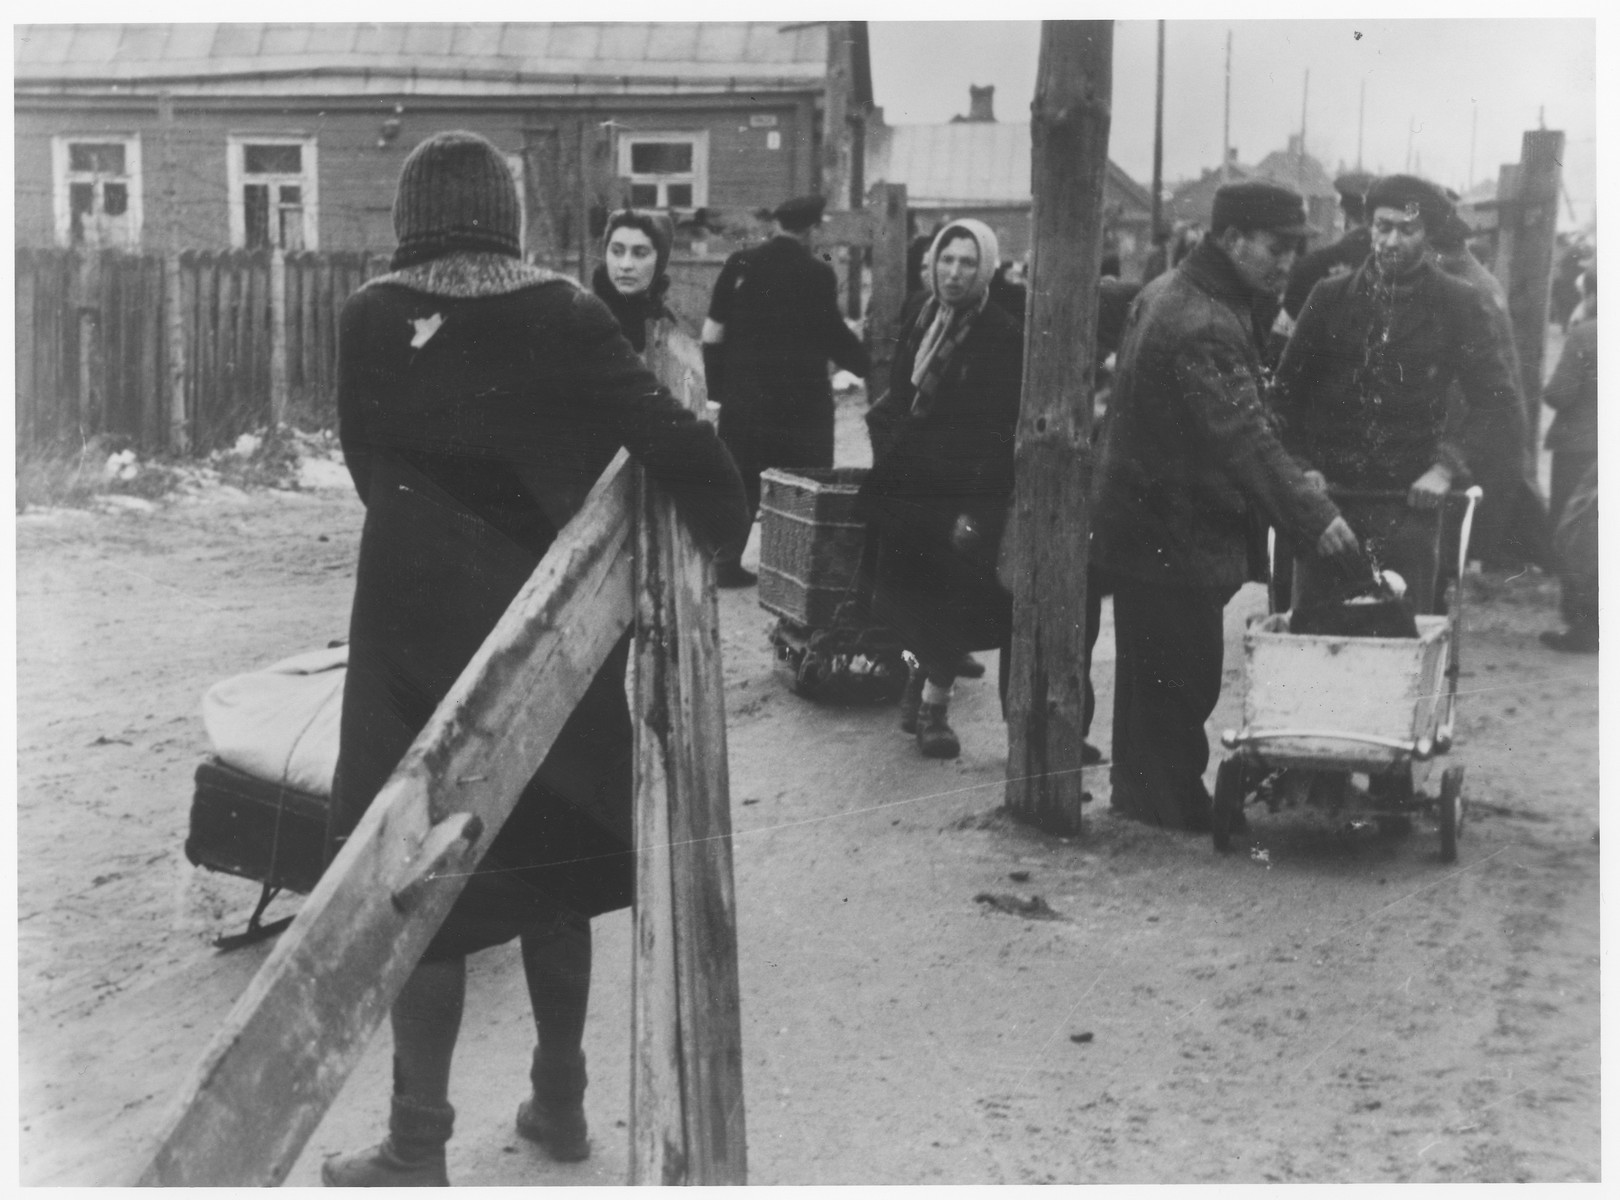 Jews are gathered near one of the entrances to the Kovno ghetto while moving their belongings into the ghetto.